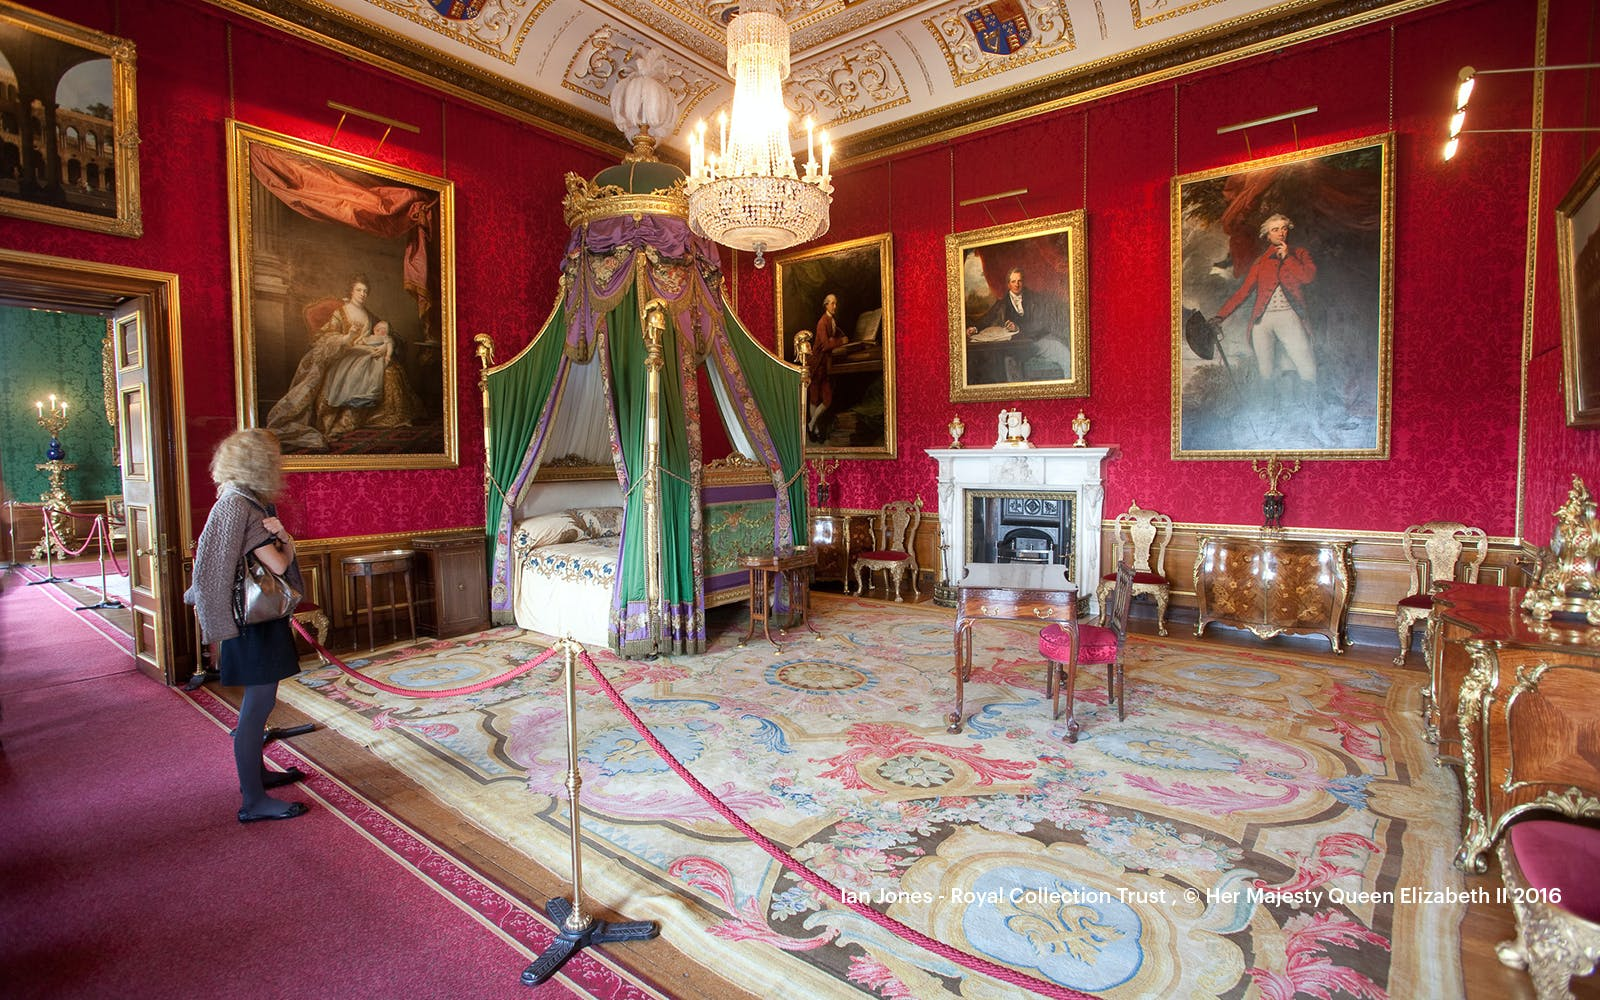 buckingham palace state rooms tour-4